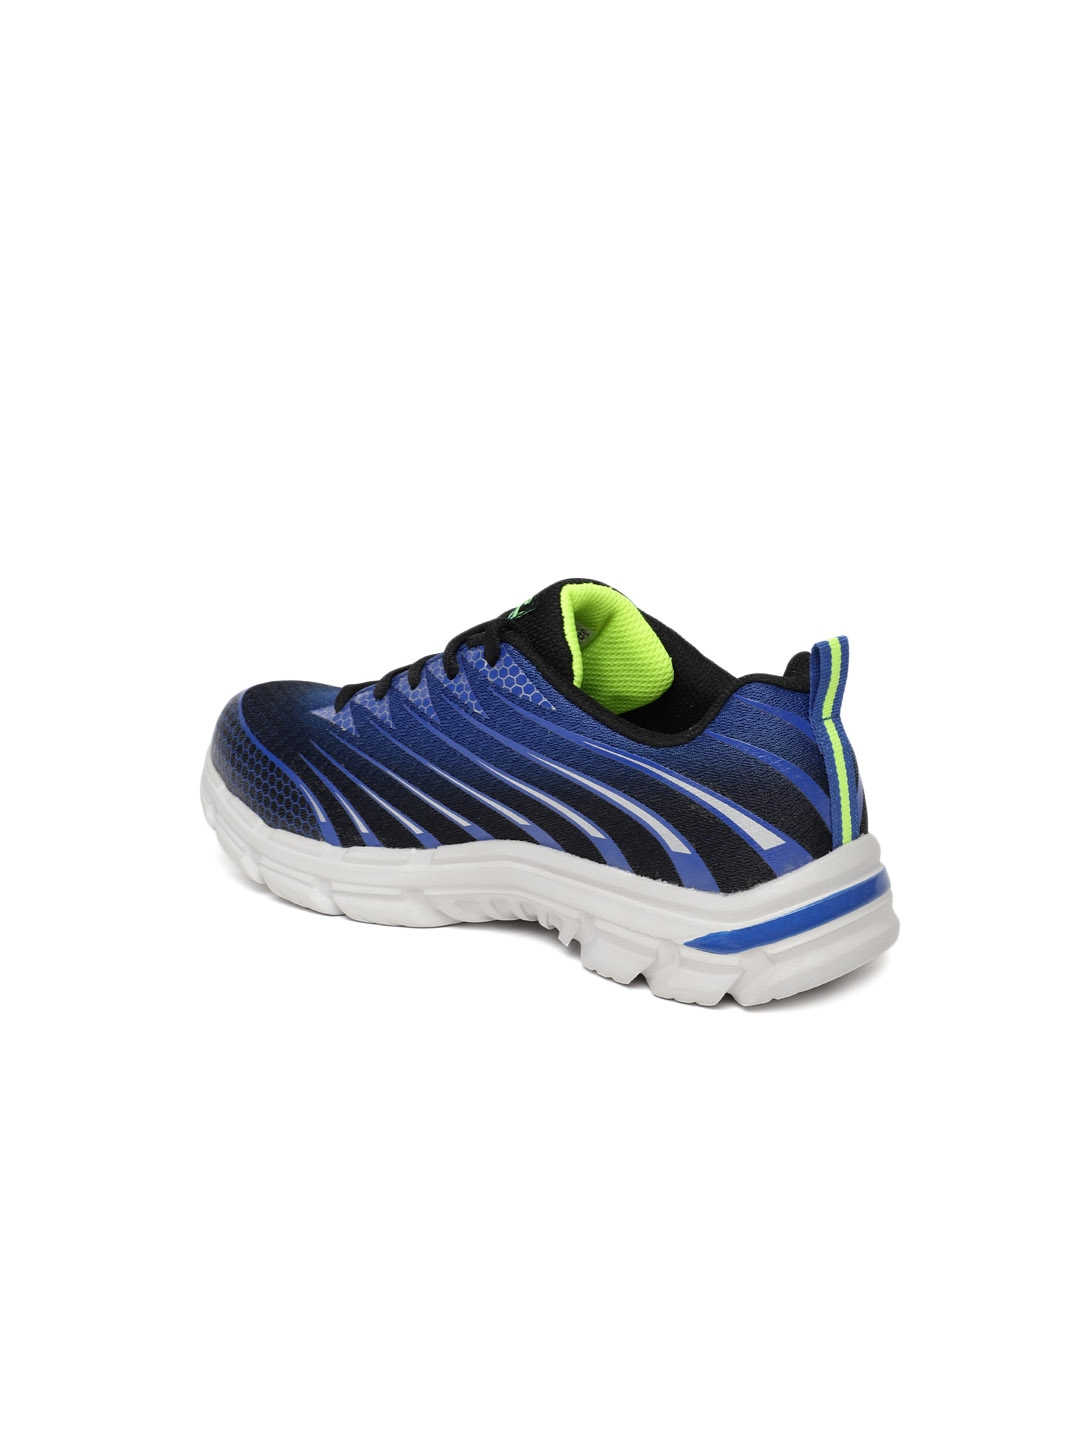 cc72e5a5162f Buy Skechers Boys Blue Nitrate Training Or Gym Shoes - Sports Shoes ...